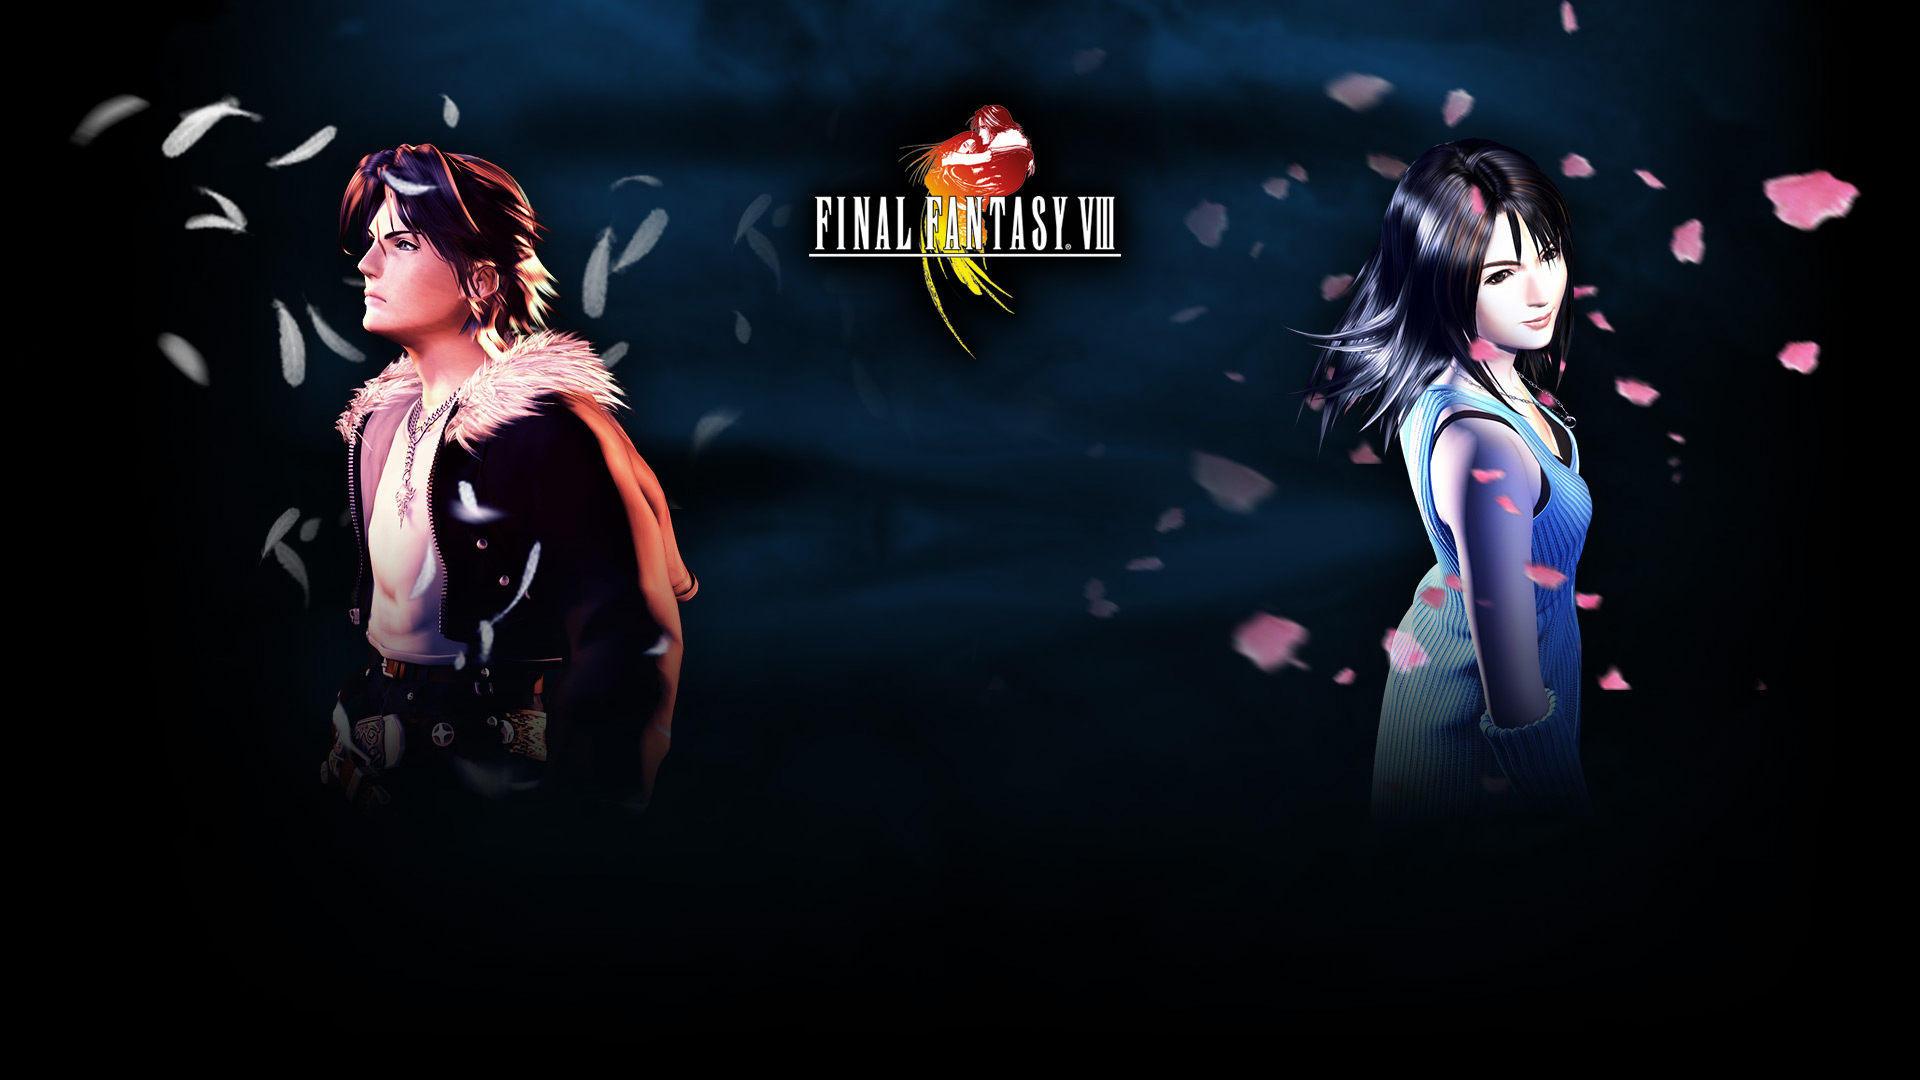 final fantasy 8 wallpaper hd